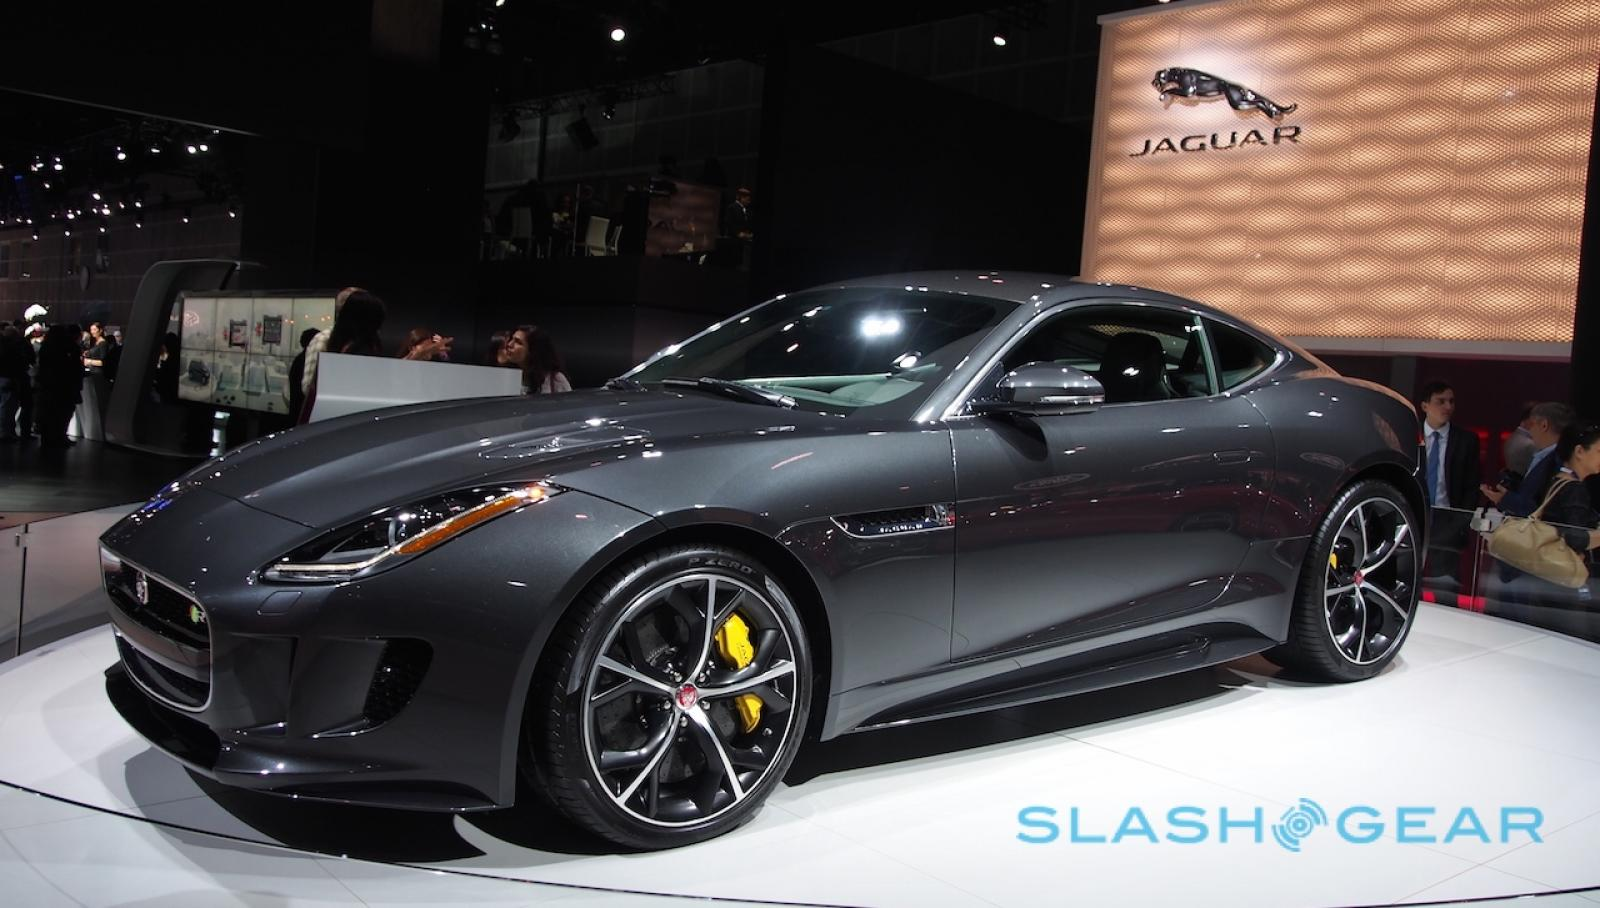 2016 Jaguar F-TYPE - Information and photos - Zomb Drive on